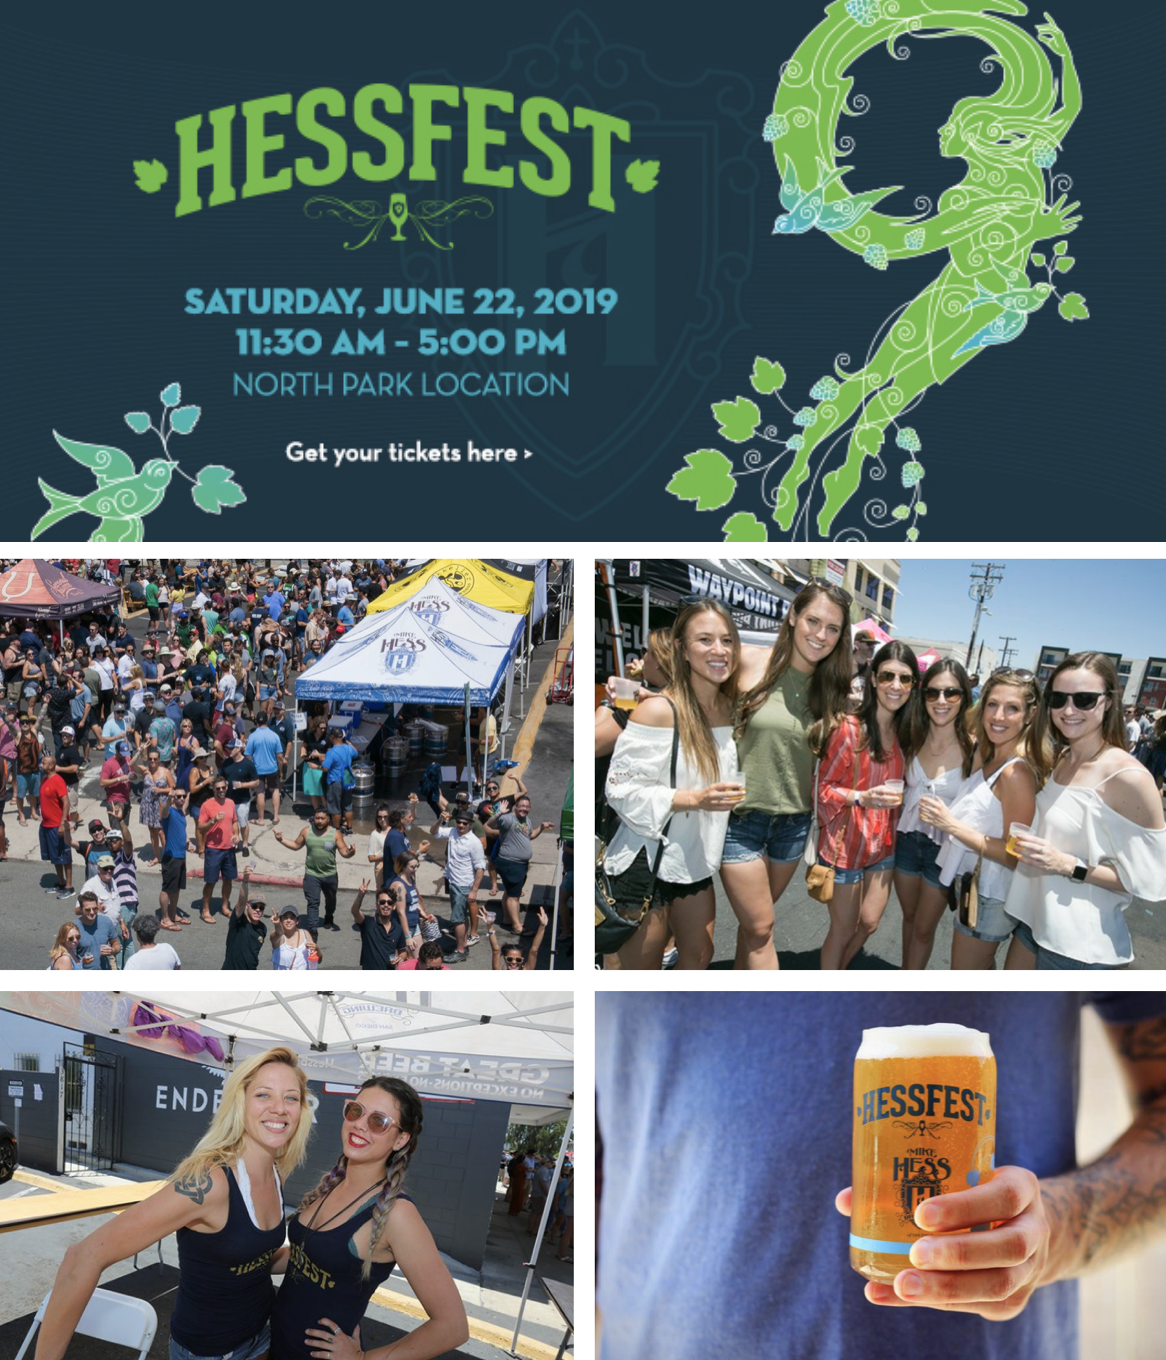 Save on passes & Enter to win VIP tickets to HessFest 9 - June 22!